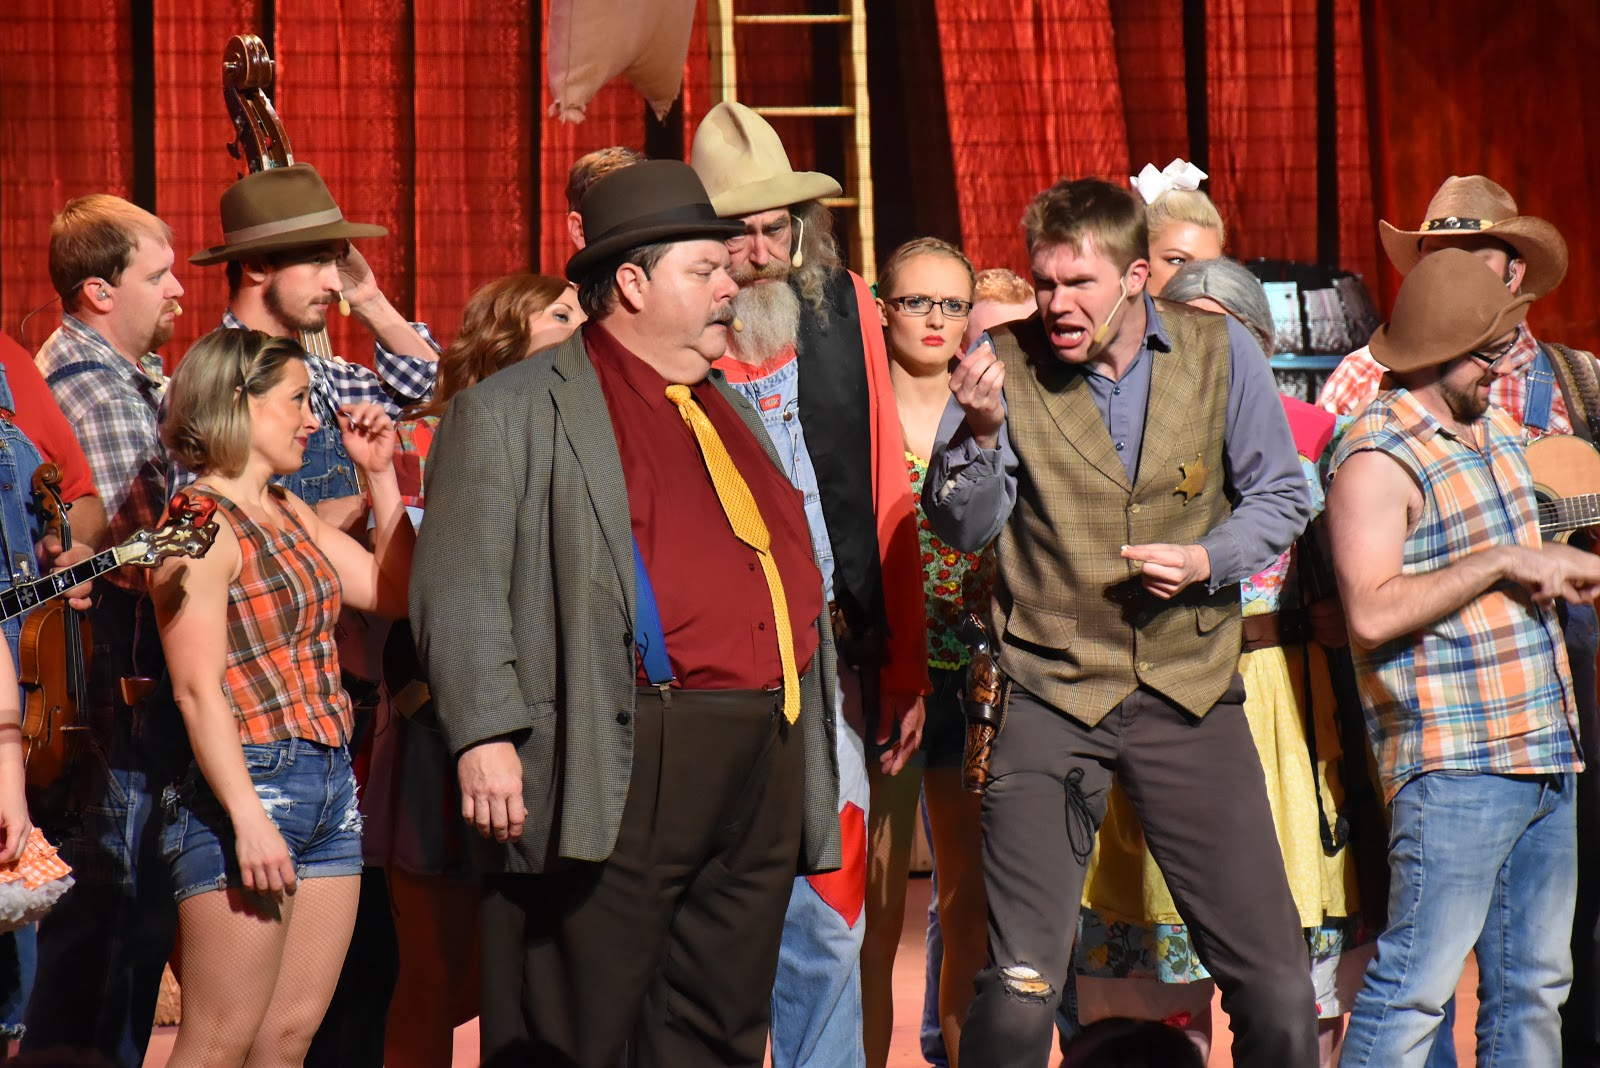 The Best Comedy Dinner Show in Pigeon Forge: Hatfield & McCoy Dinner Feud